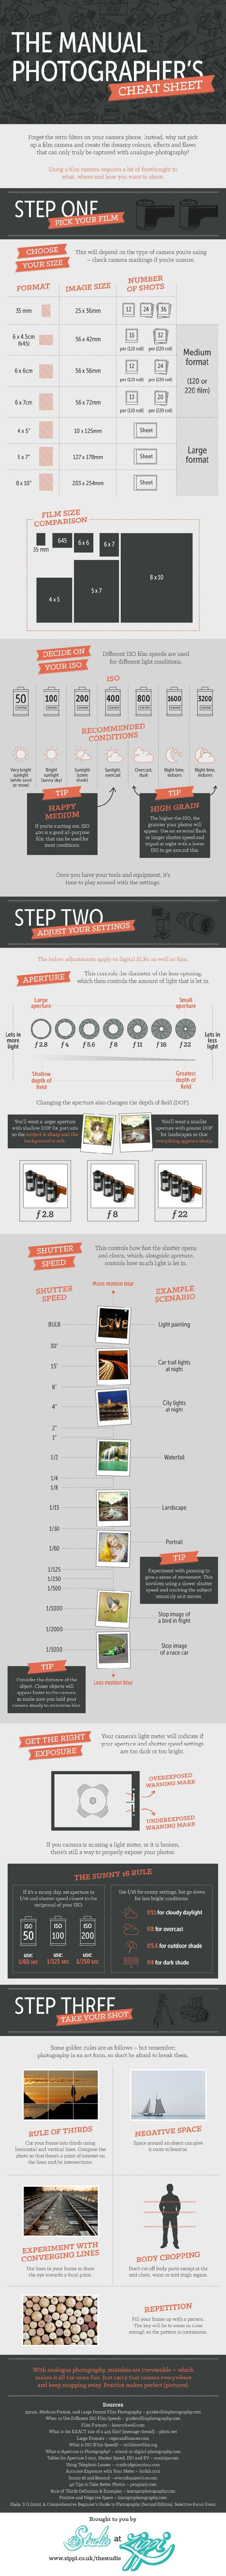 This infographic/cheat sheet from Zippi might be helpful for those looking to get out of auto mode and gaining more control over their cameras. While section 1 is much more for those shooting with film the rest is relevant for digital photography. We've included some more further reading on getting out of auto mode and …